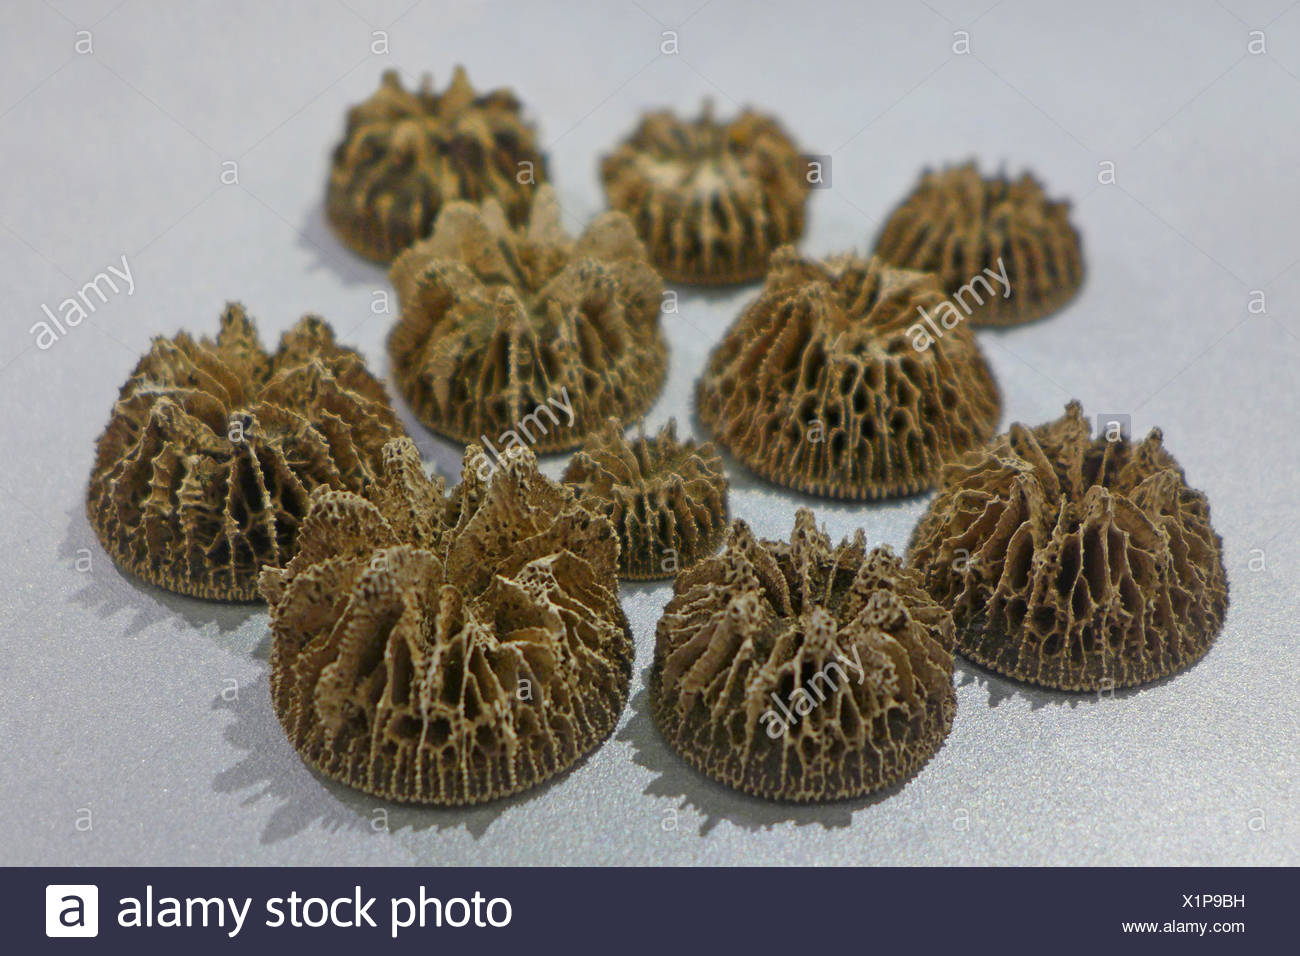 coral (Stephanophyllia nysti), fossile coral from miocene (20 million years), locality: Netherlands - Stock Image